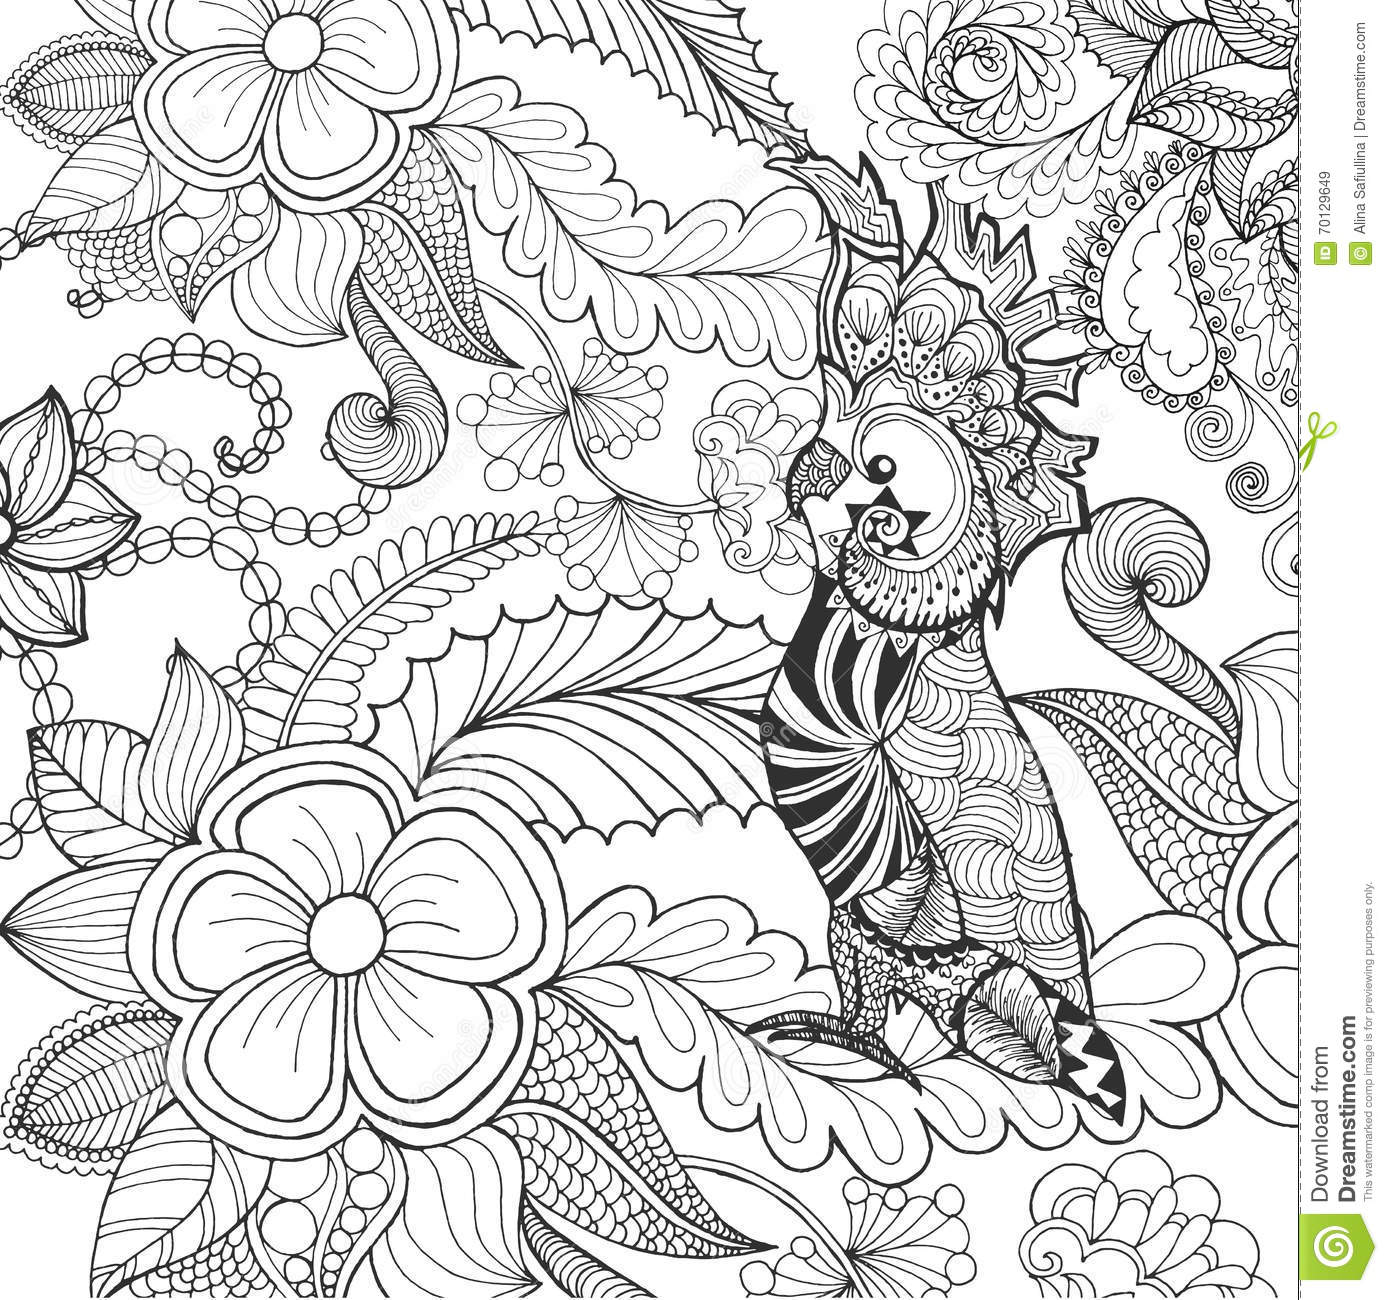 Cute Cockatoo Coloring Page Stock Vector Illustration of boho book 70129649